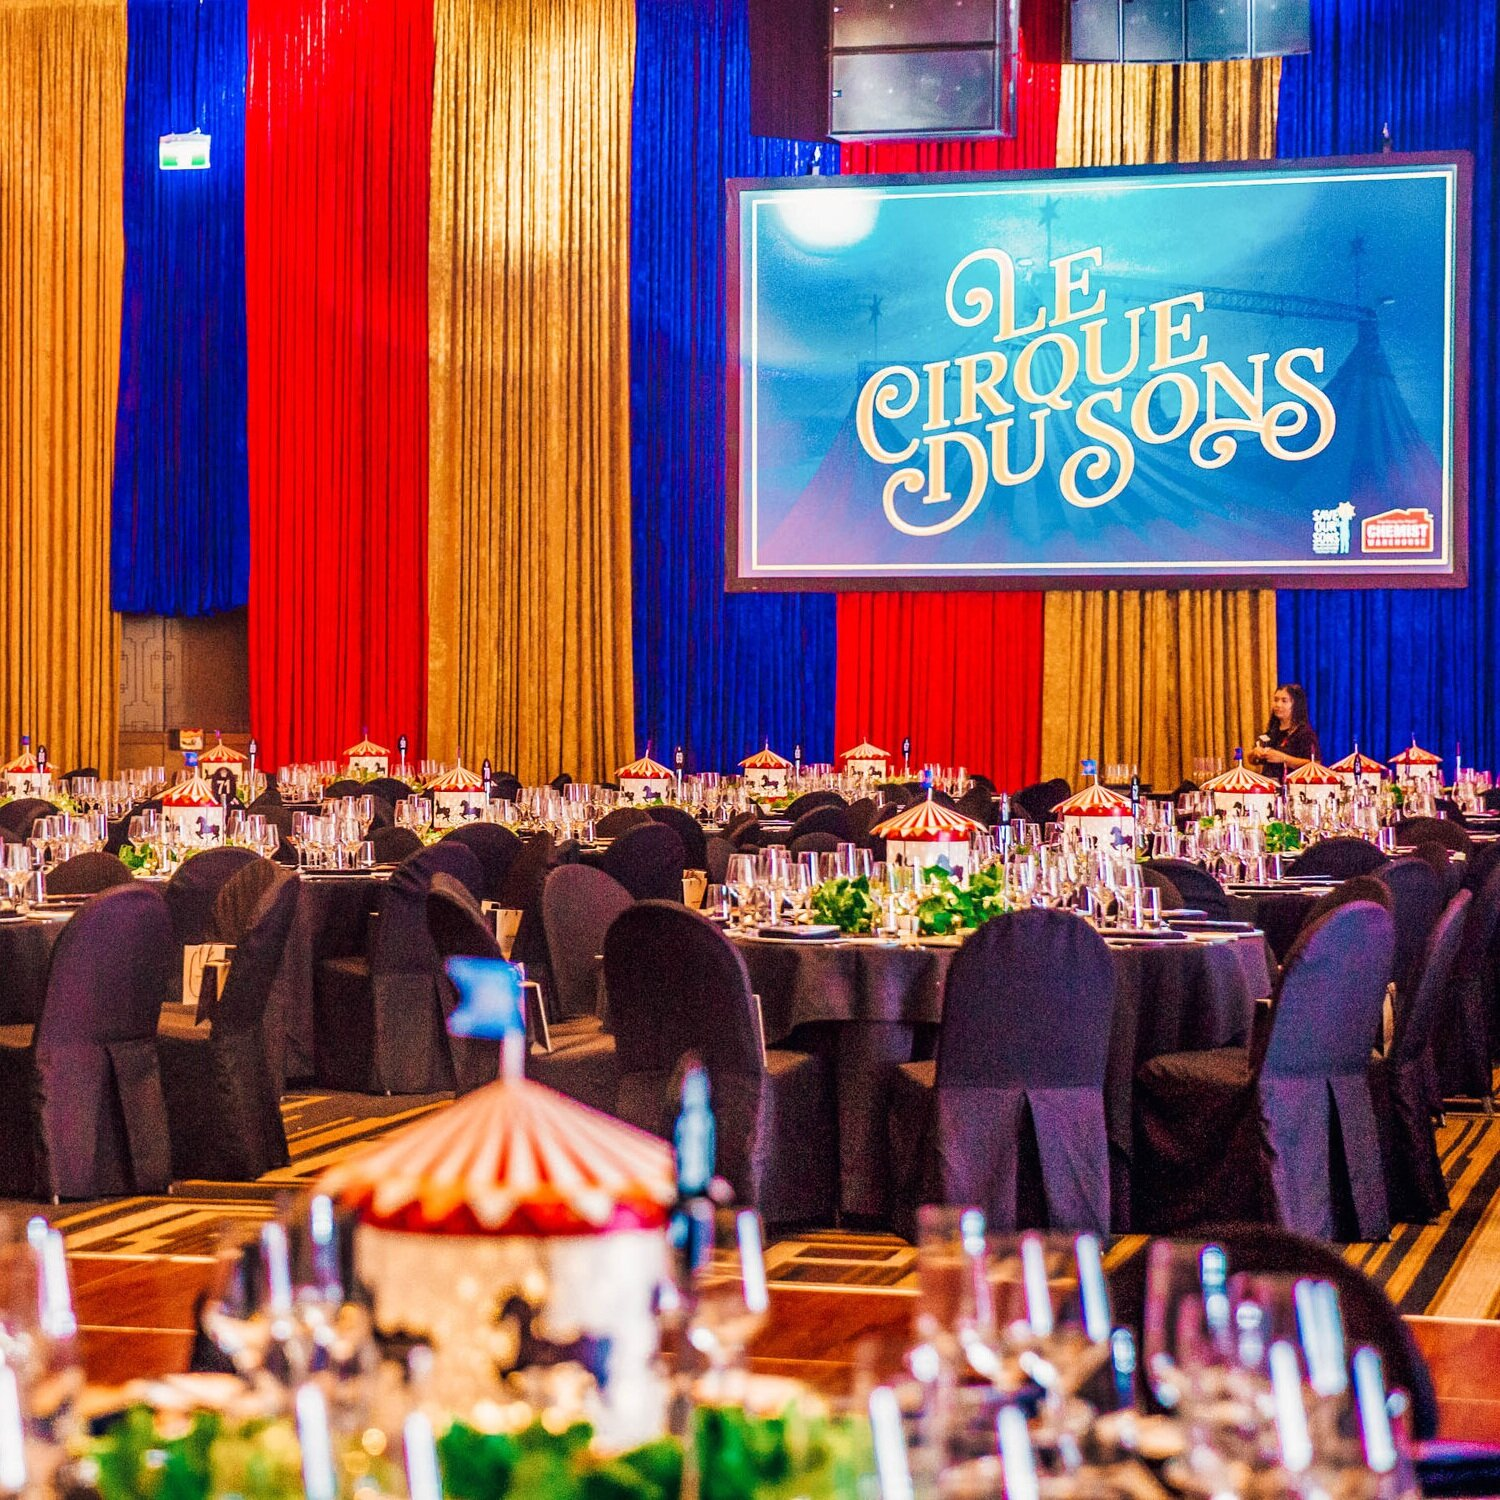 wall Draping - We have the biggest range of draping for your next event. Quality assured, you're guaranteed to find something you'll love.